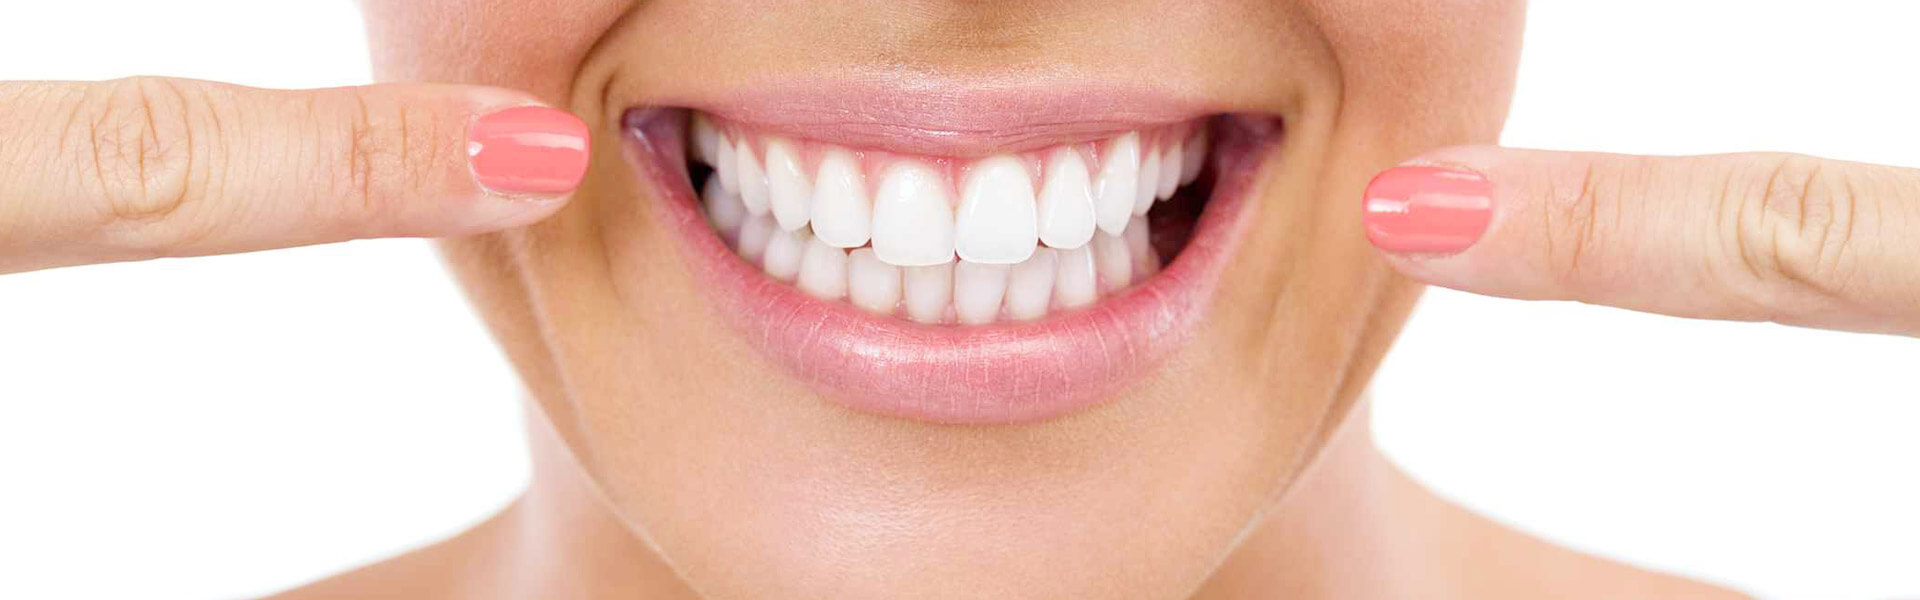 4 Reasons to Go to a Dentist for Teeth Whitening